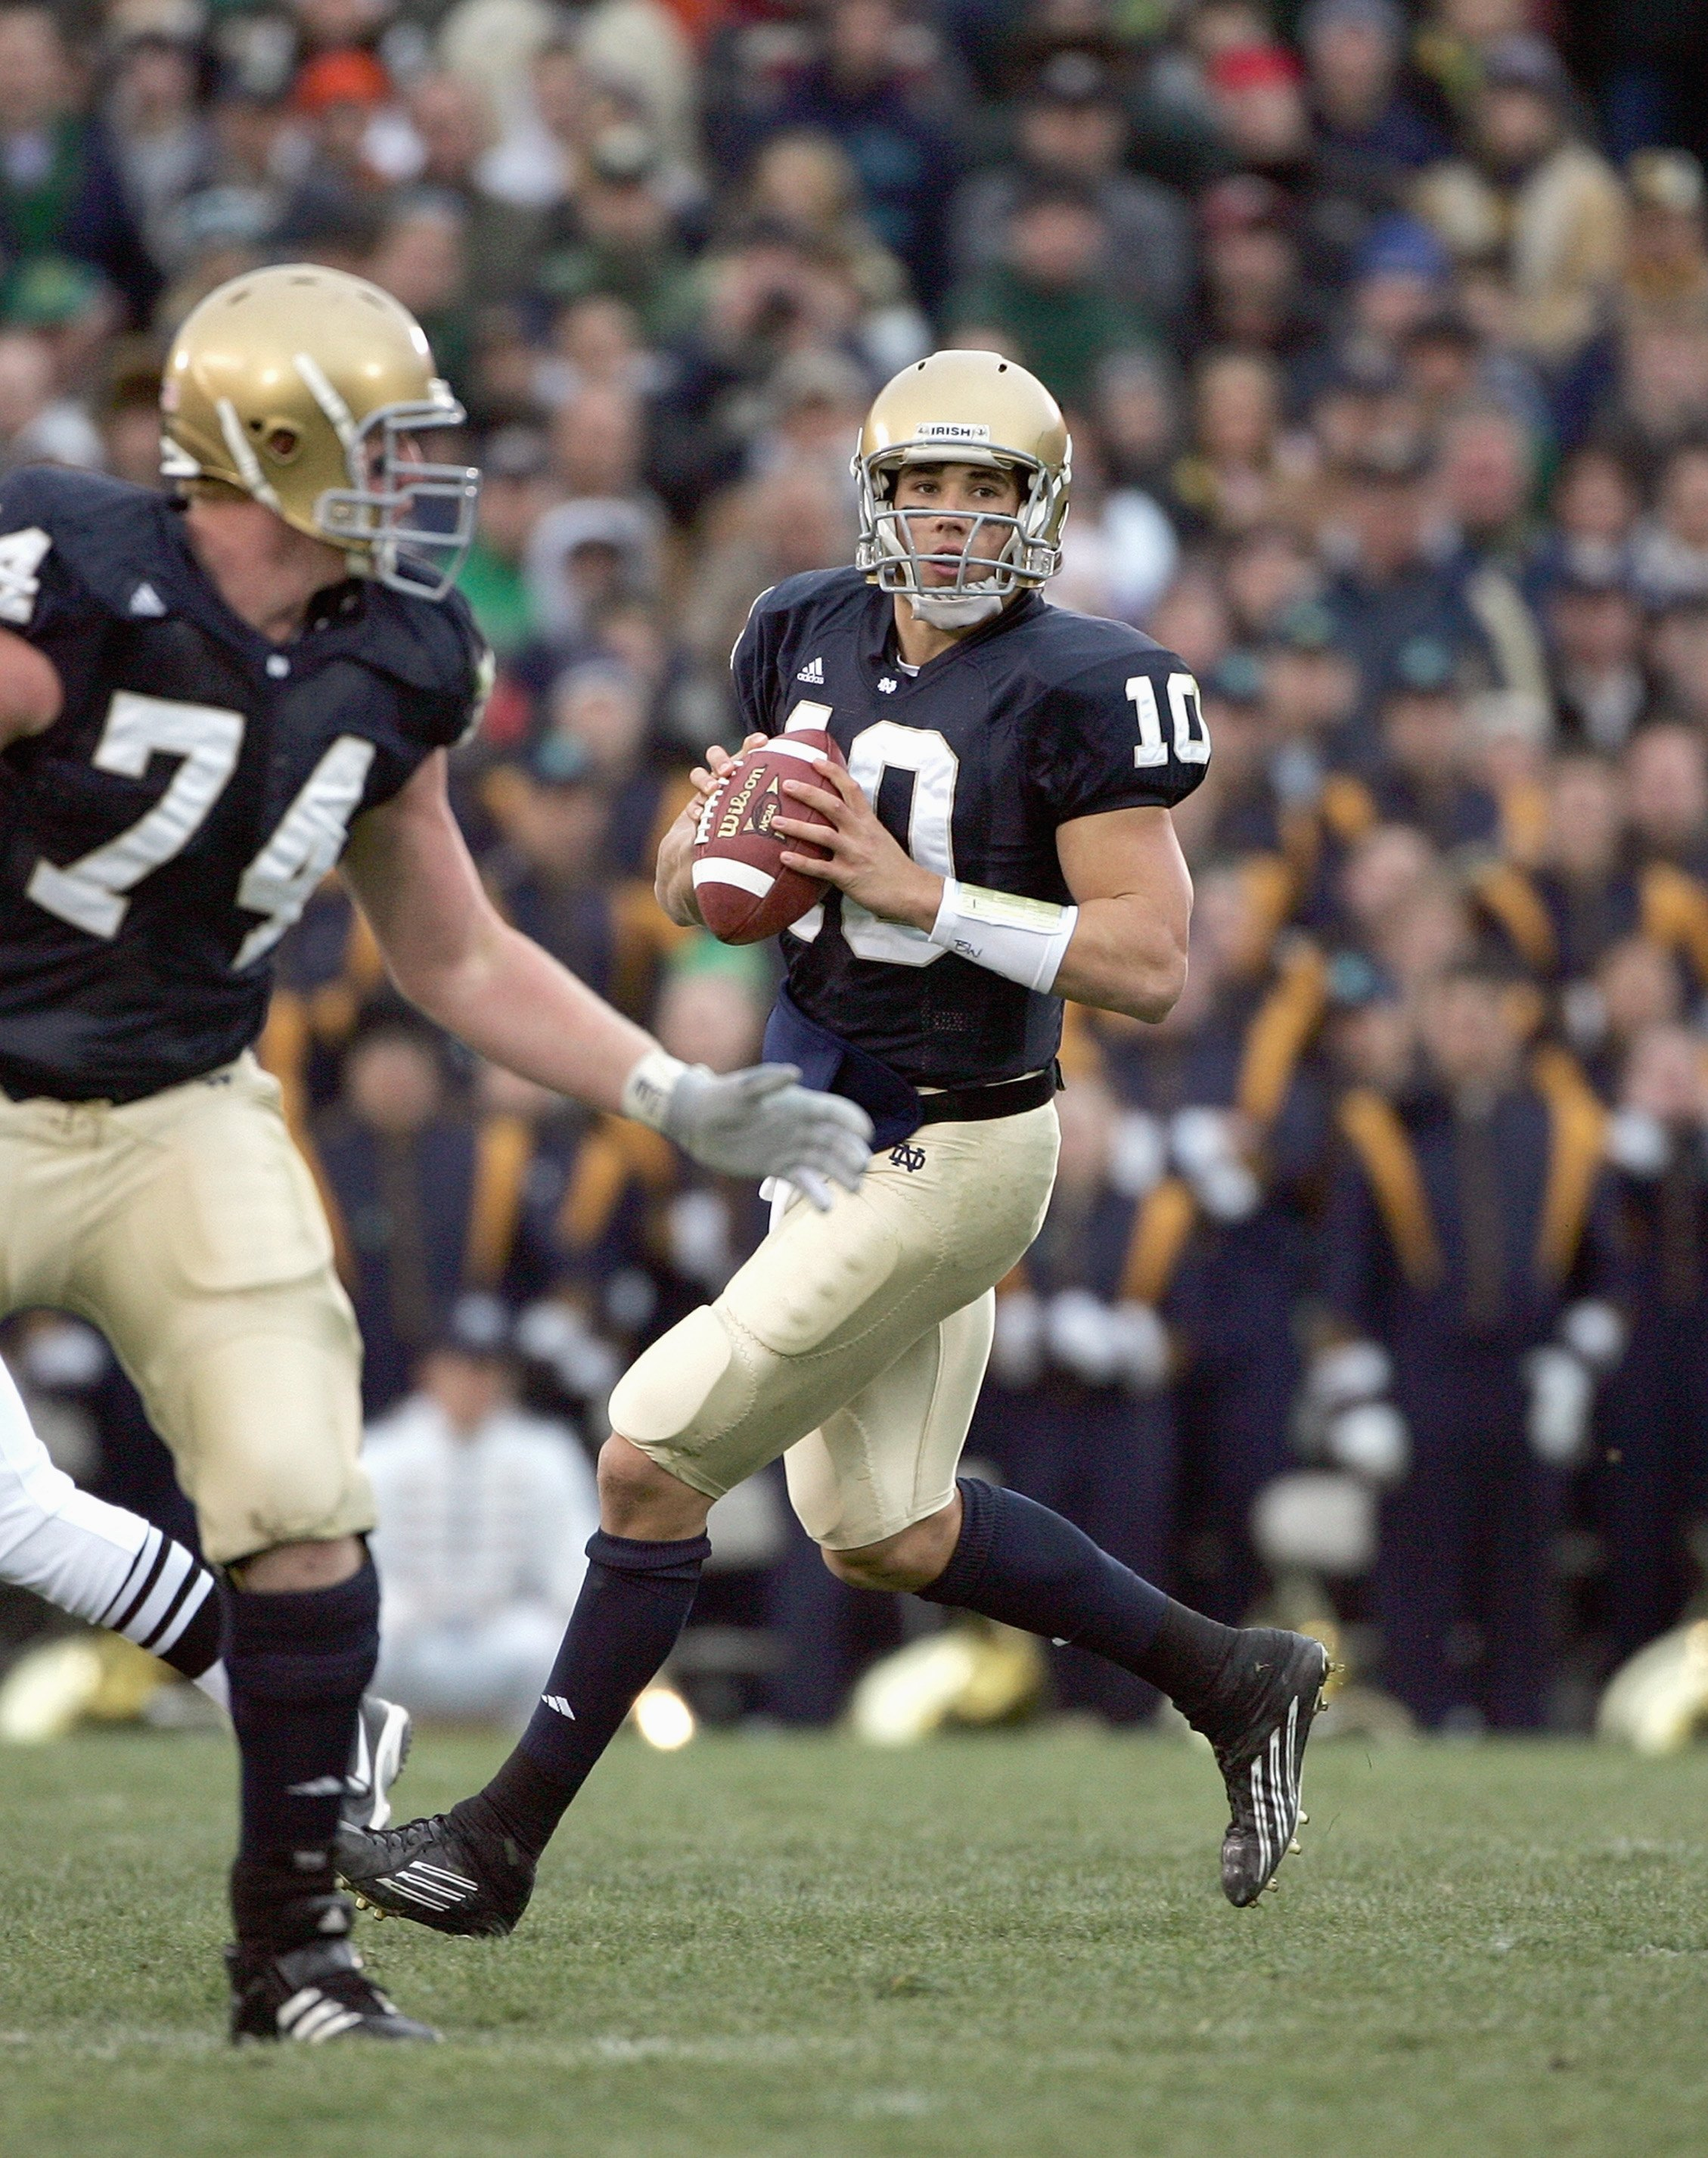 SOUTH BEND, IN - NOVEMBER 4:  Quarterback Brady Quinn #10 of the Notre Dame Fighting Irish looks to pass during the game against the North Carolina Tar Heels on November 4, 2006 at Notre Dame Stadium in South Bend, Indiana. (Photo by Jonathan Daniel/Getty